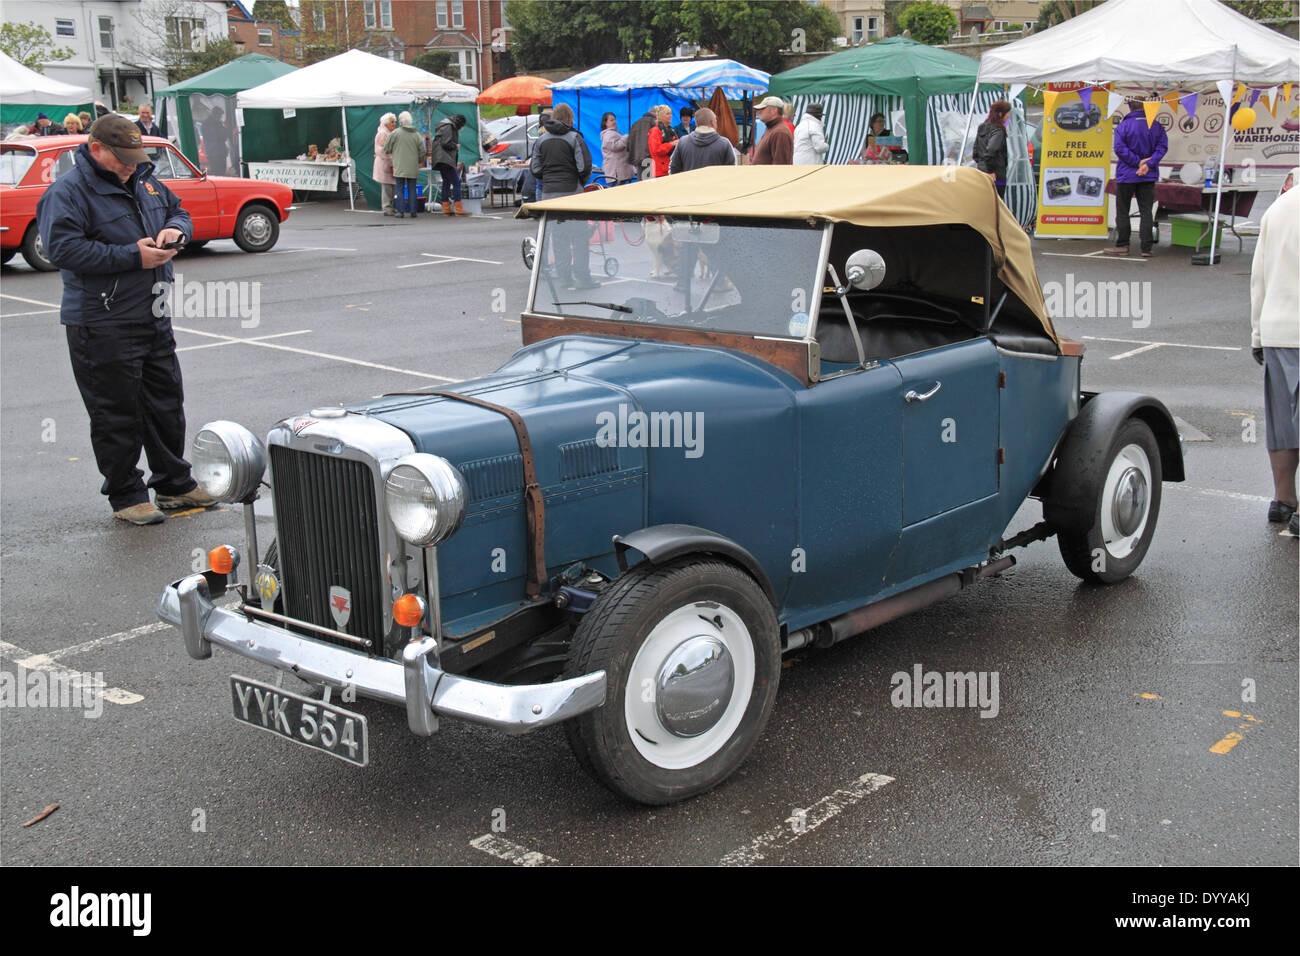 Unusual Old Car Information Contemporary - Classic Cars Ideas ...